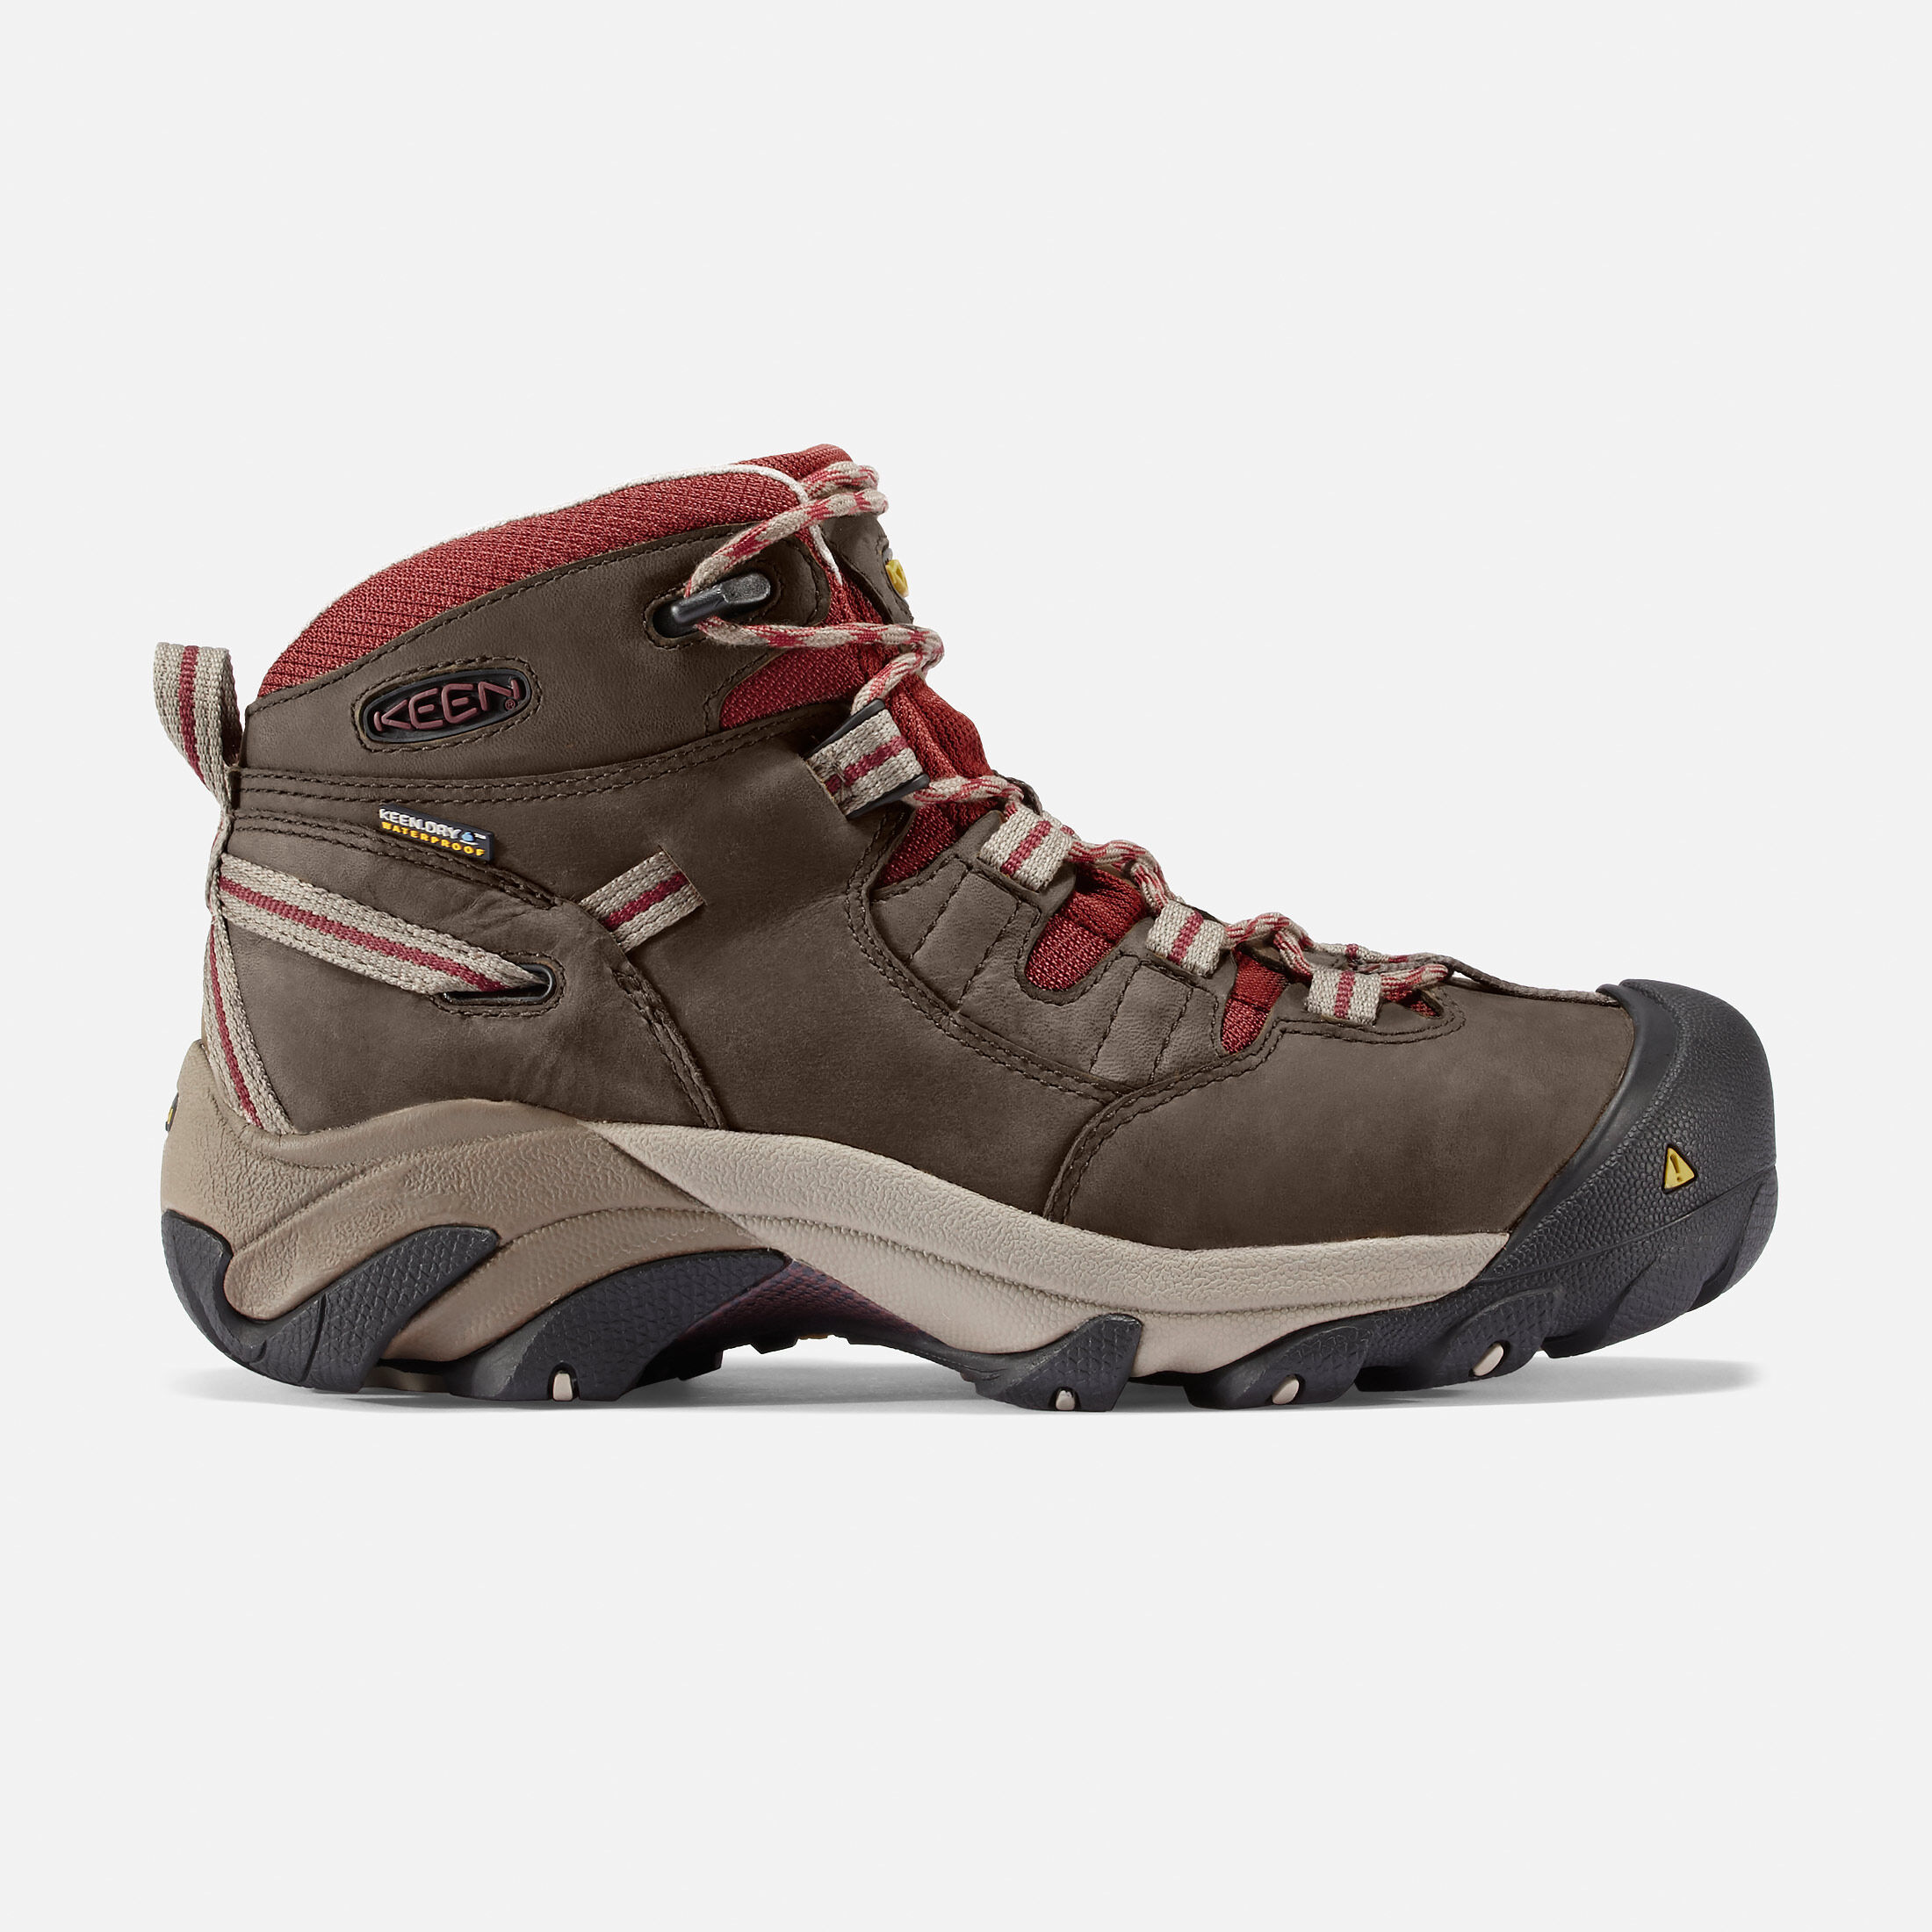 Keen Utility Shoes Keen Utility Detroit Mid Steel Toe Mens Boots Brown/Blue